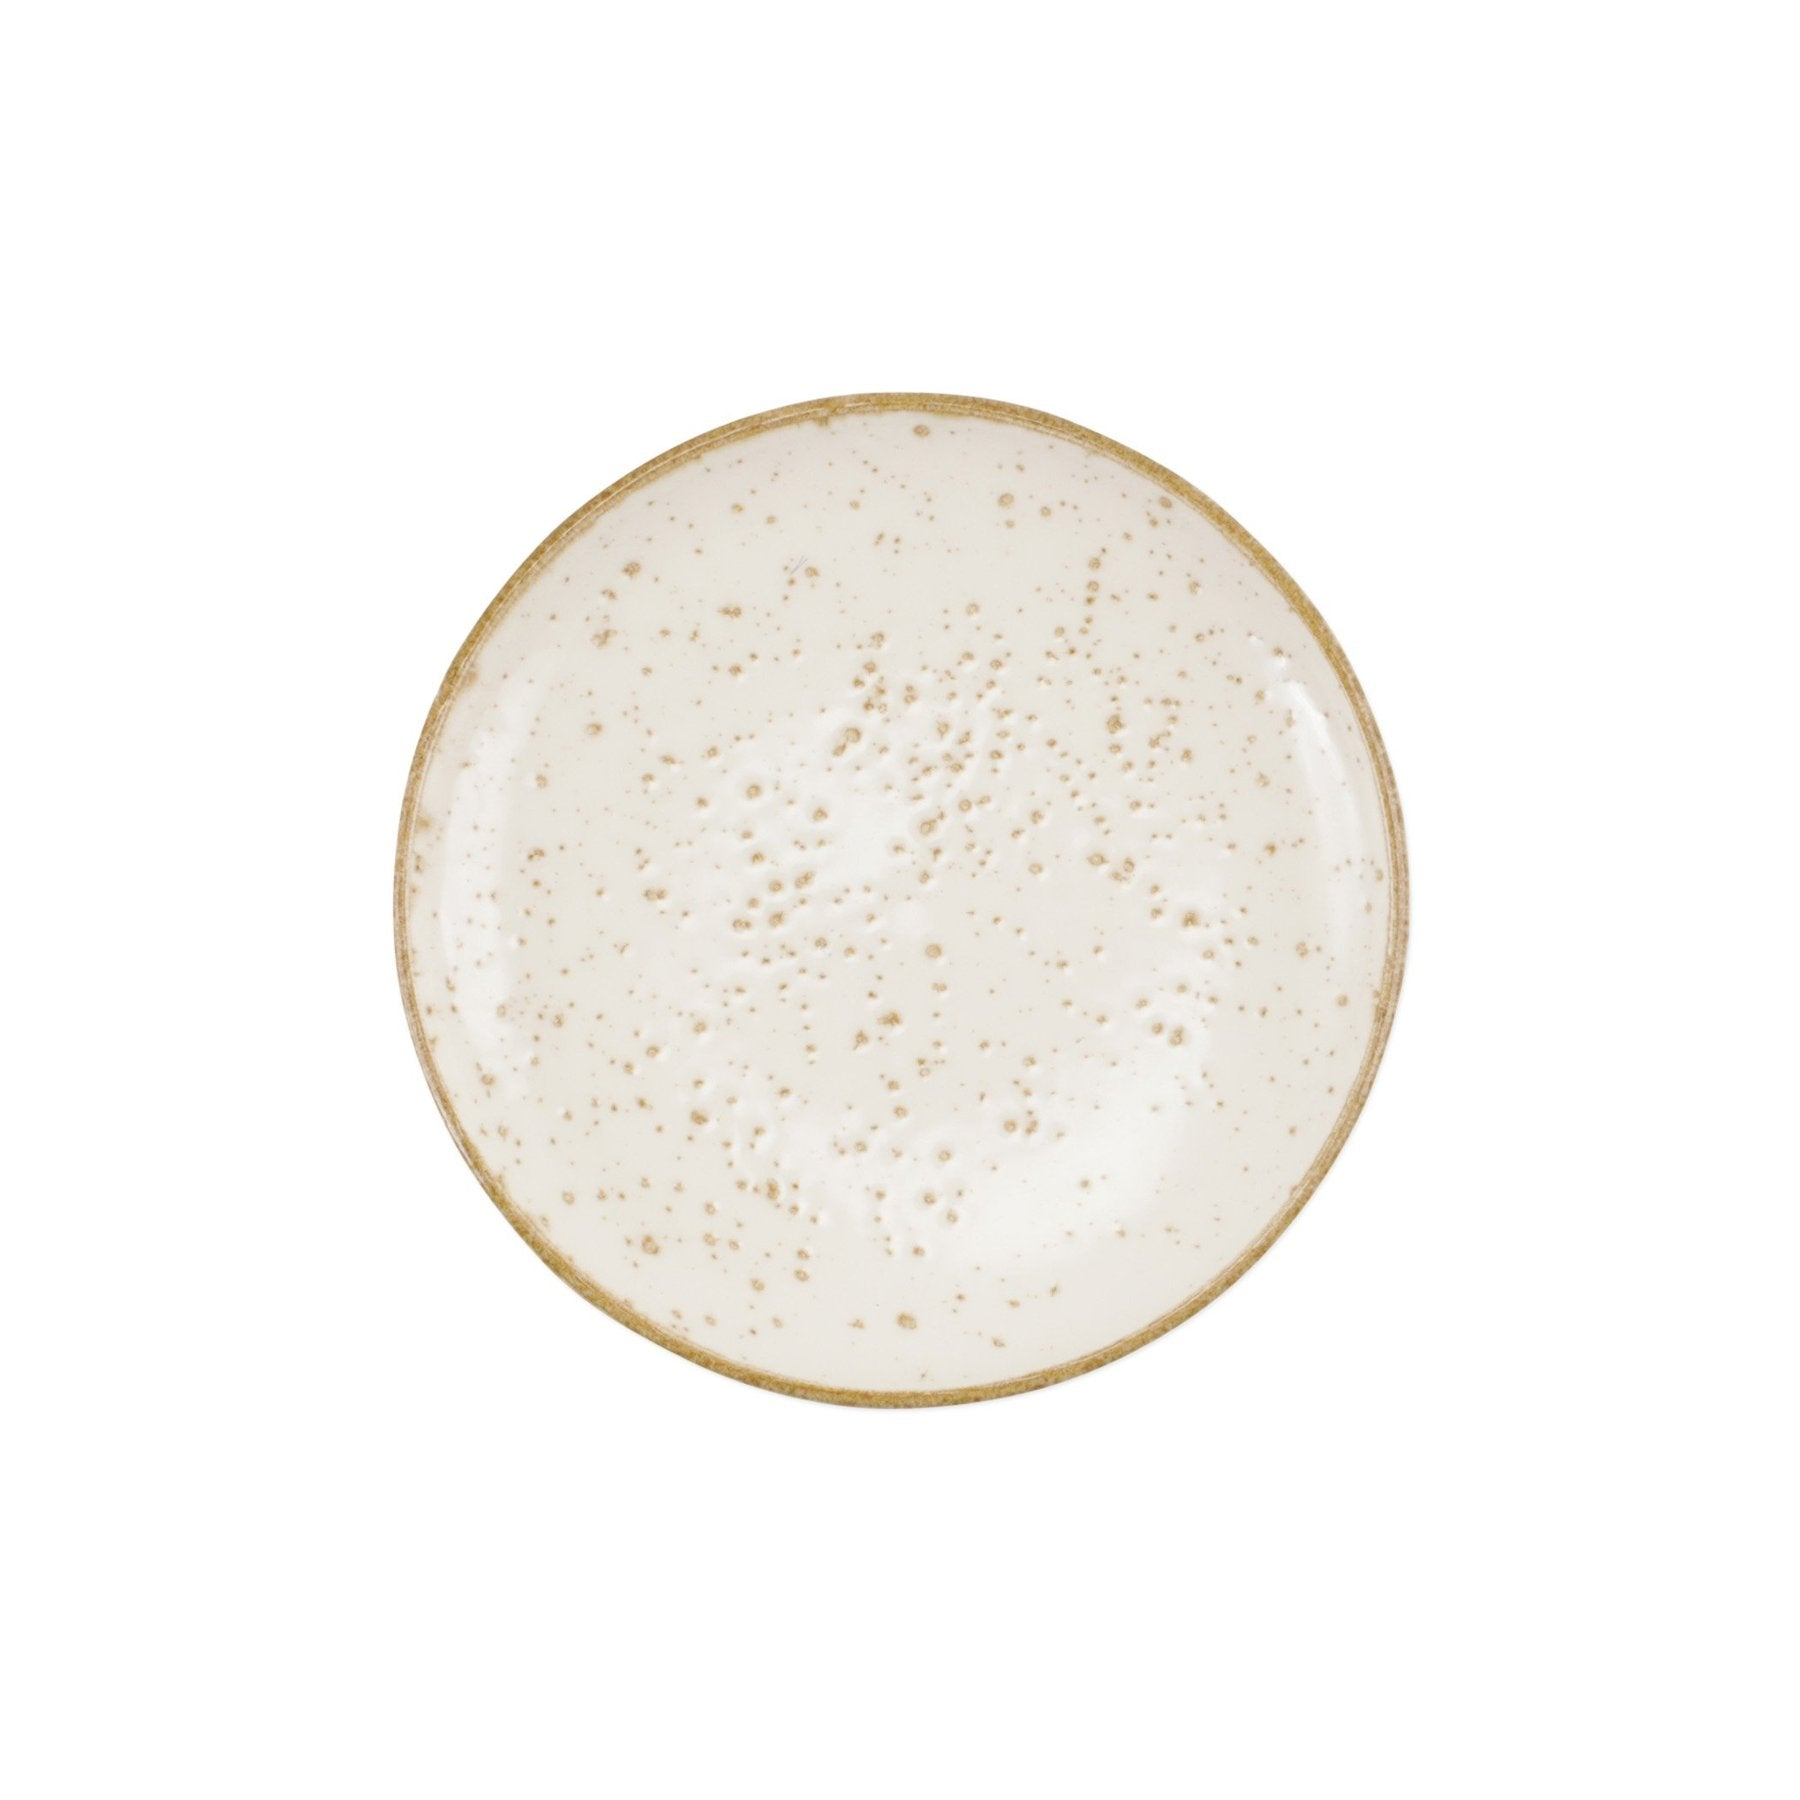 Earth Cocktail Plate, Eggshell